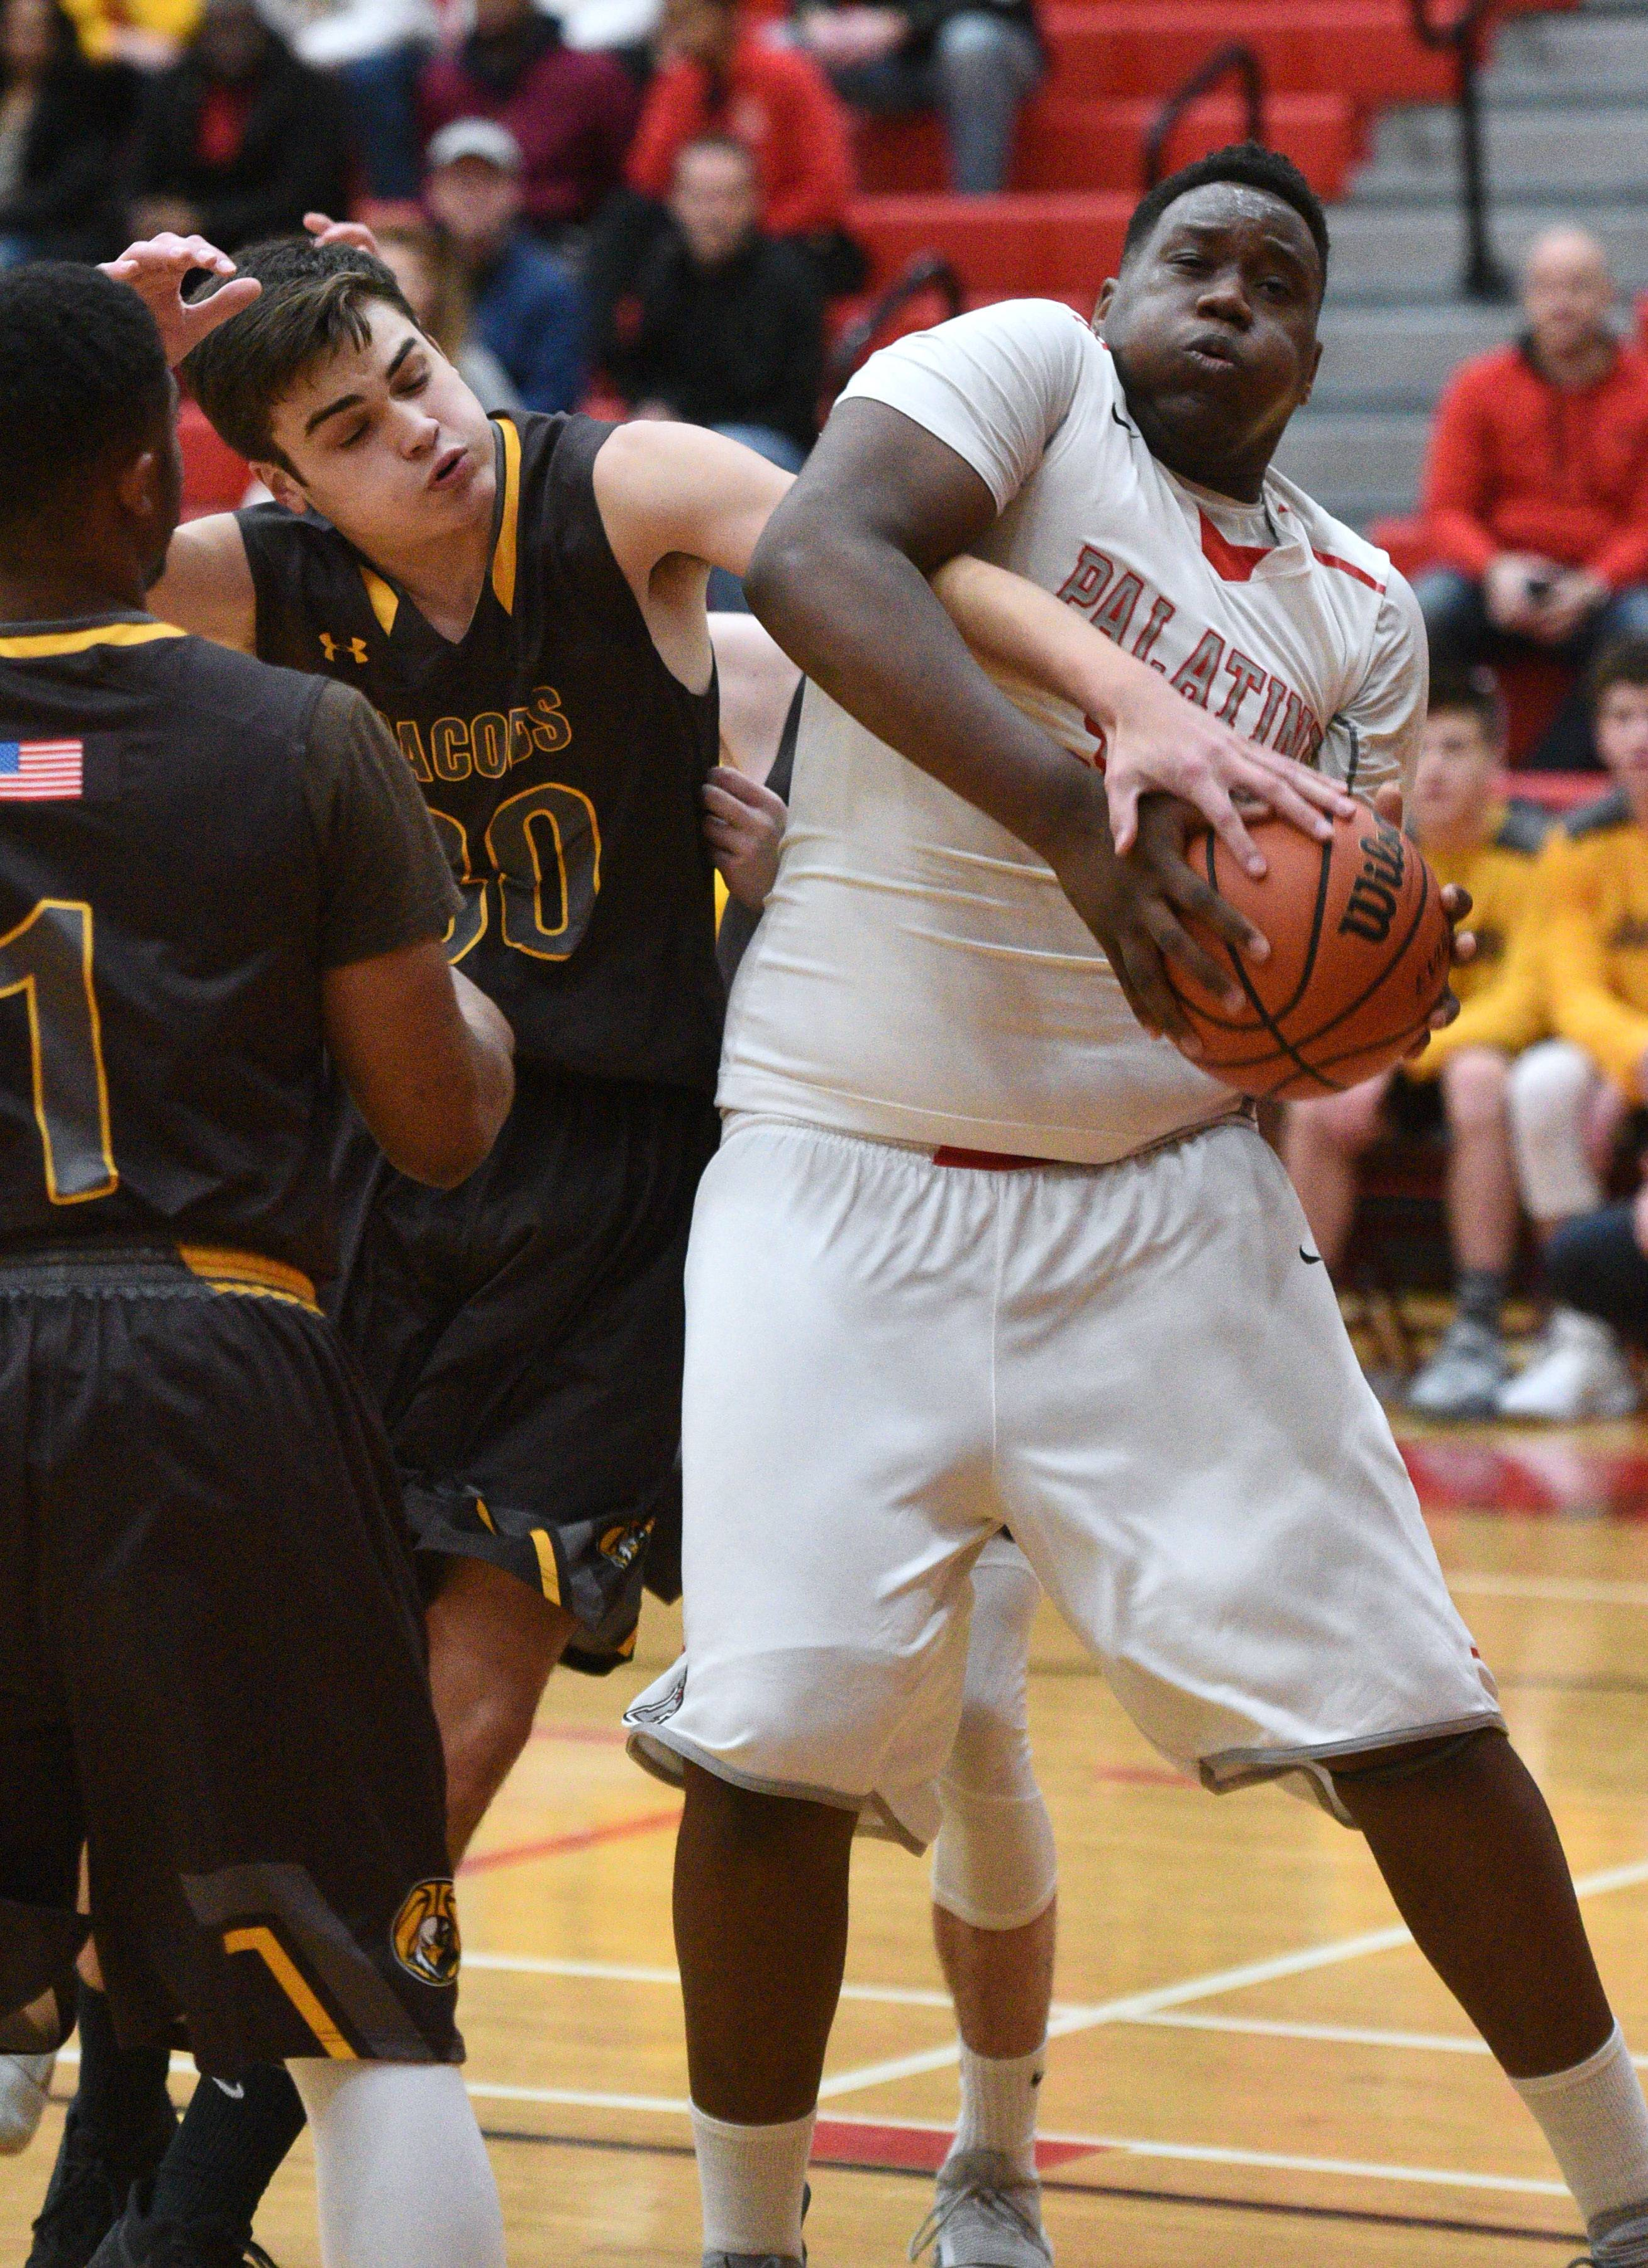 Palatine's Julian Campbell, right, fights for a rebound against Jacobs earlier this season.